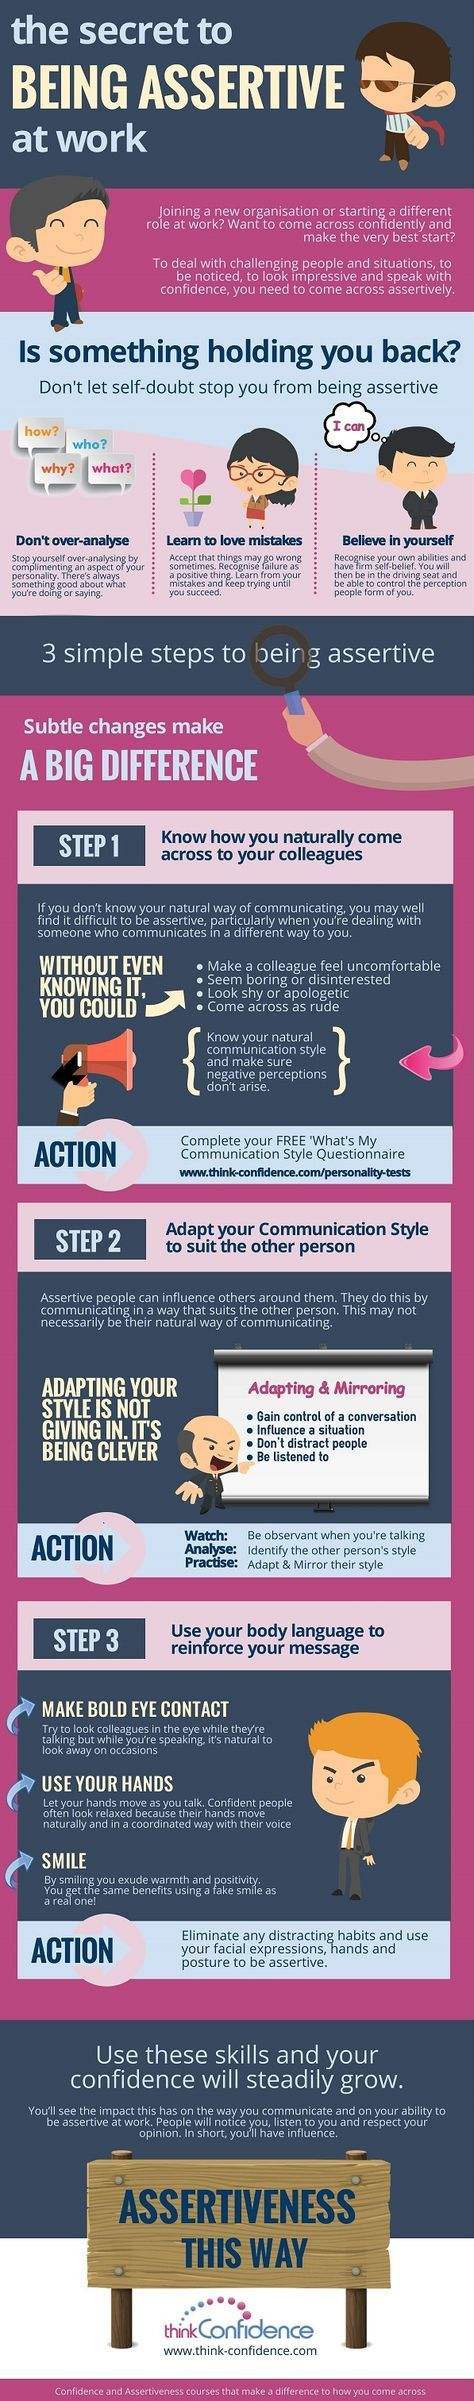 Being Assertive At Work Infographic 662 best